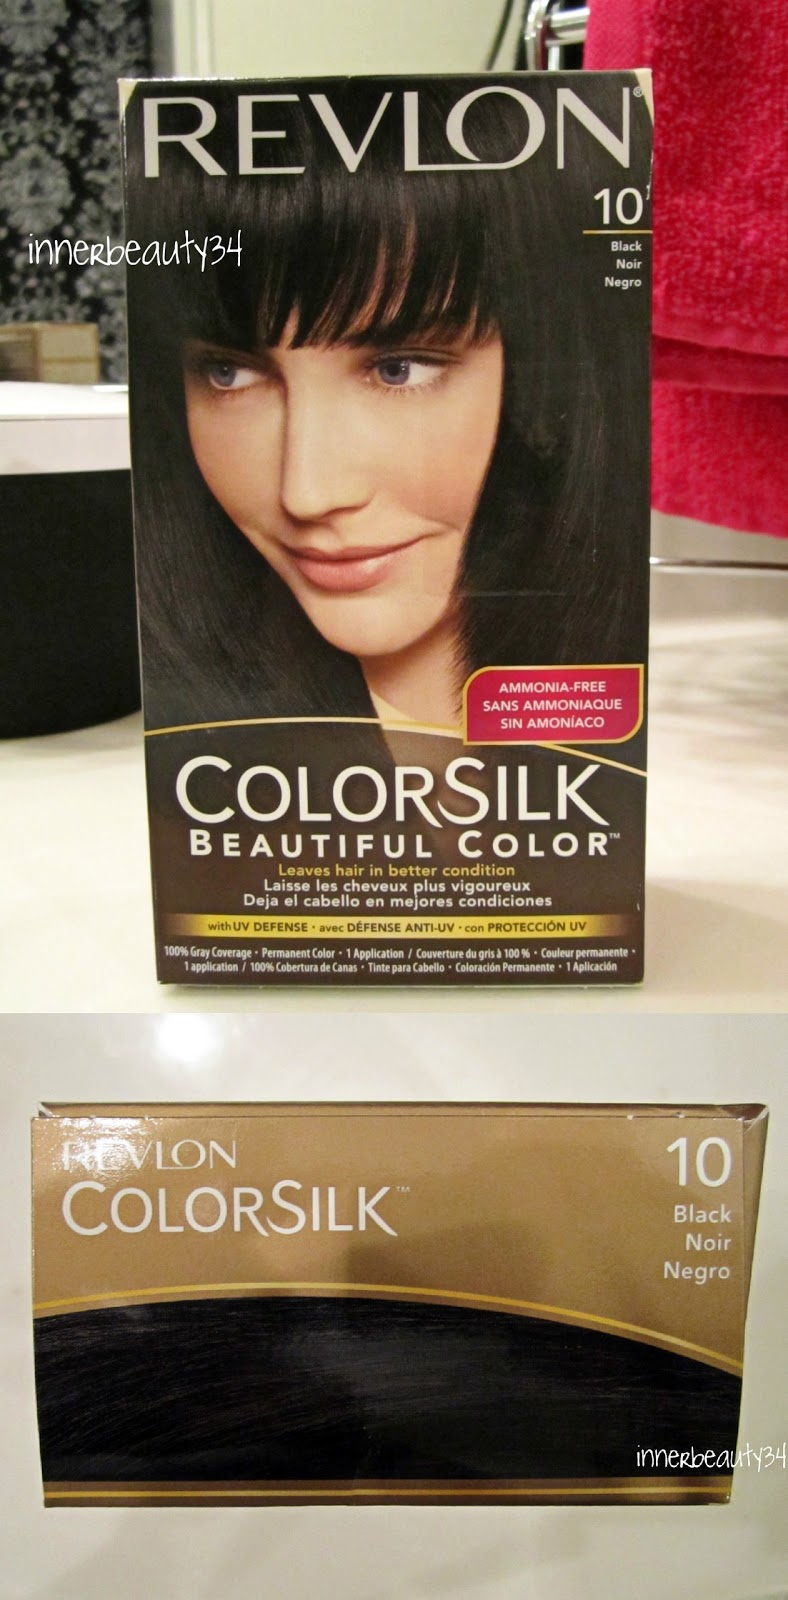 Dark Brown Hair Color Revlon Hair Color Highlighting And Coloring